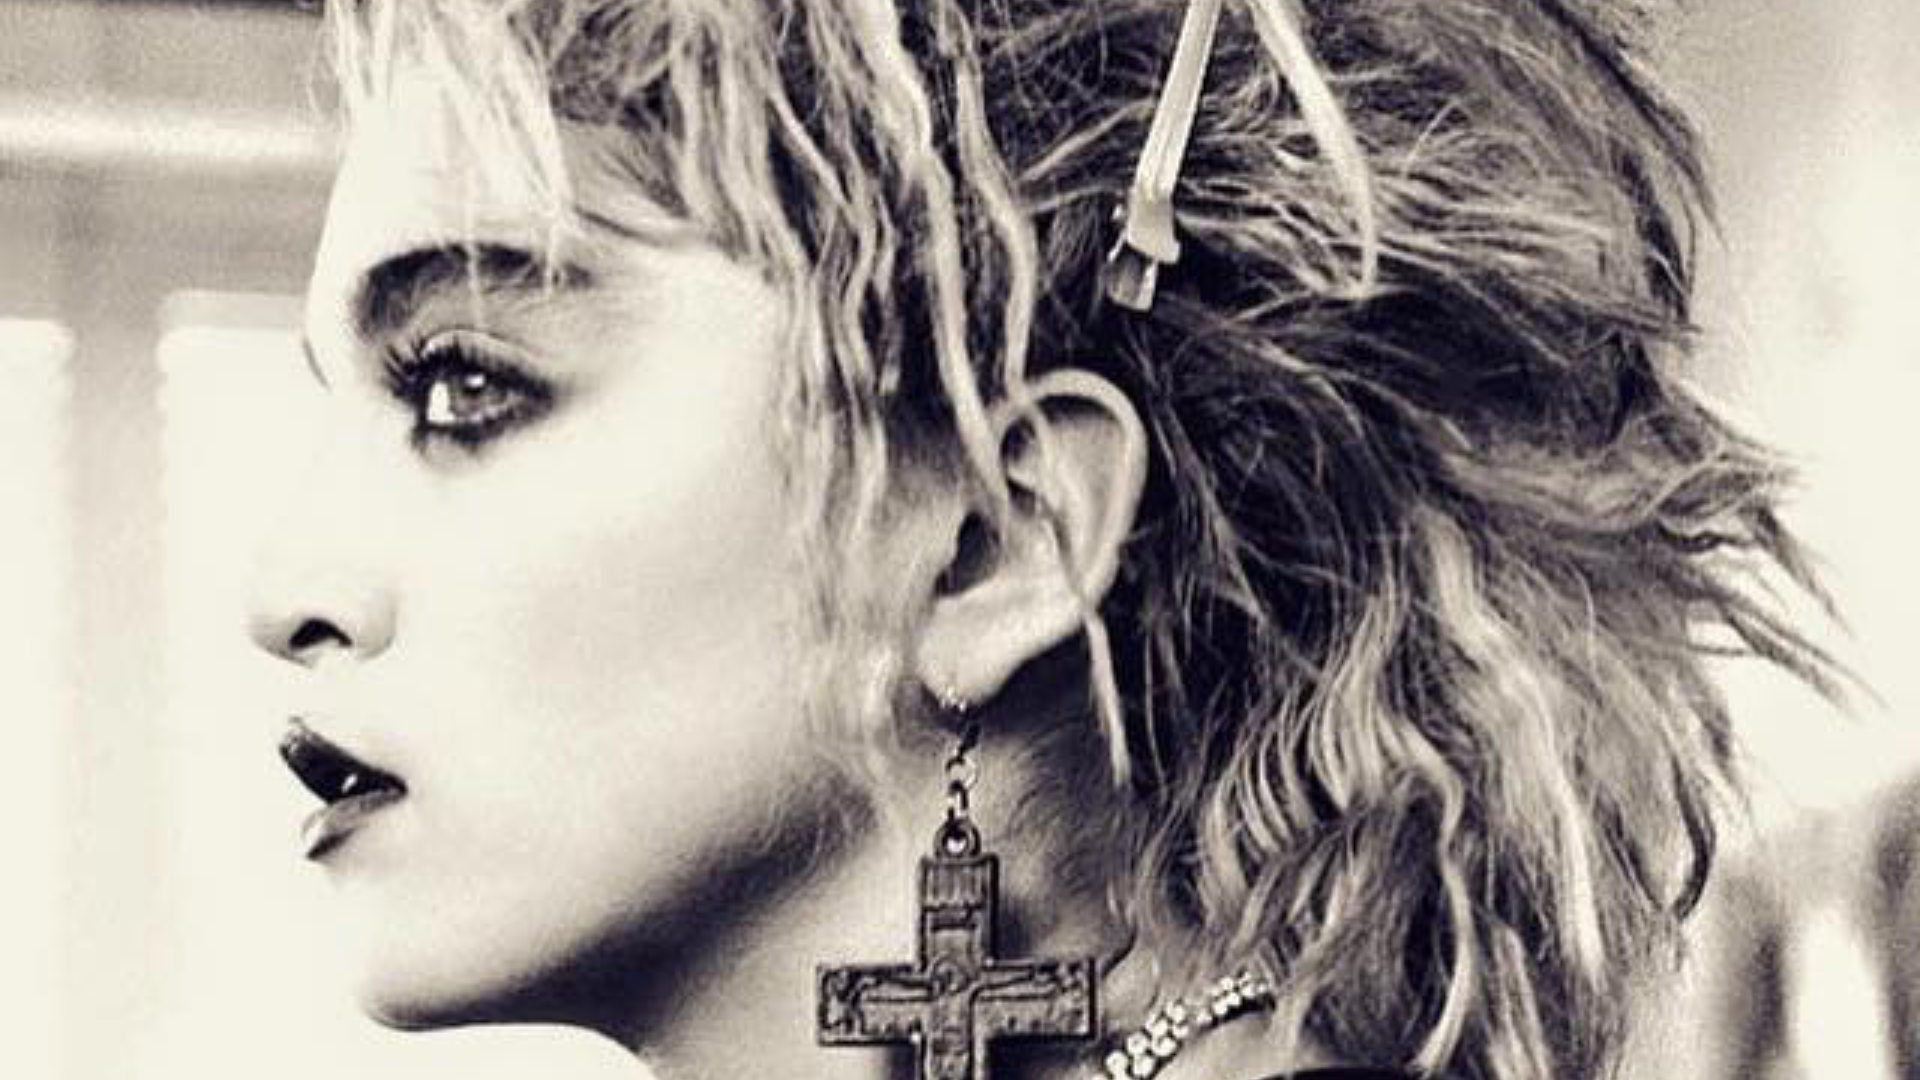 Delorean Musical episodio 13: La historia de 'Like a prayer' de Madonna